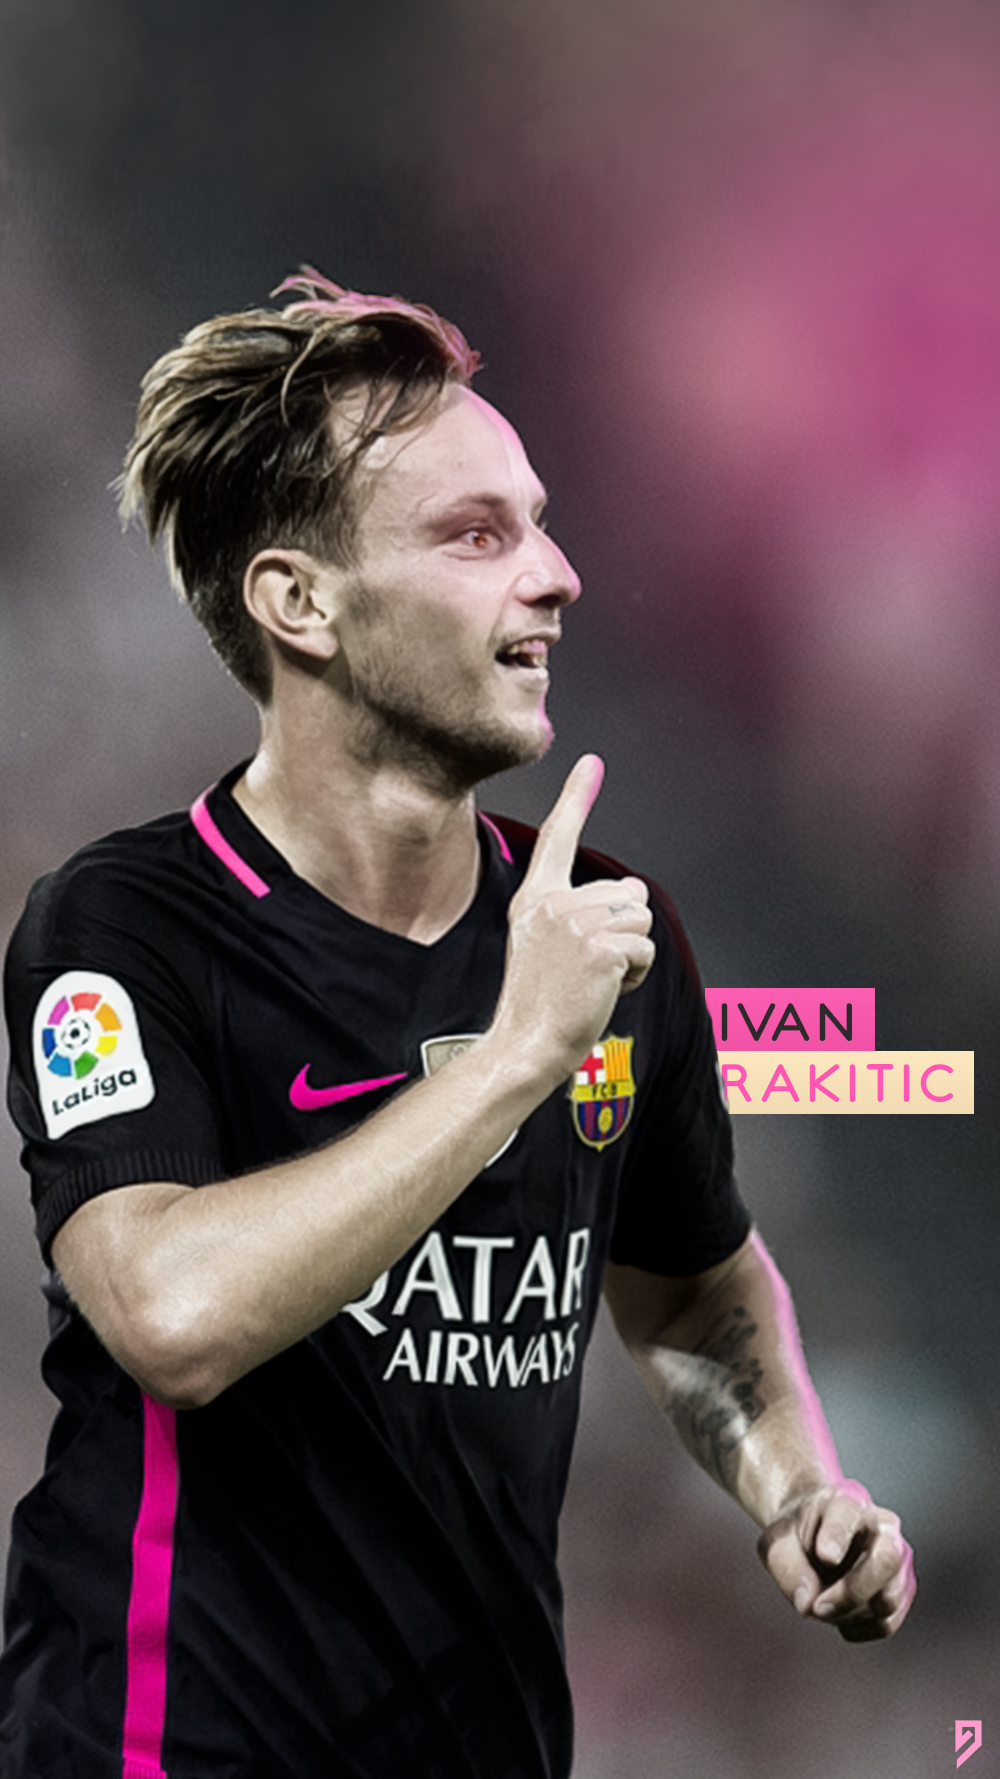 Ivan Rakitic Lock Screen Wallpaper by abgrafix96 on DeviantArt